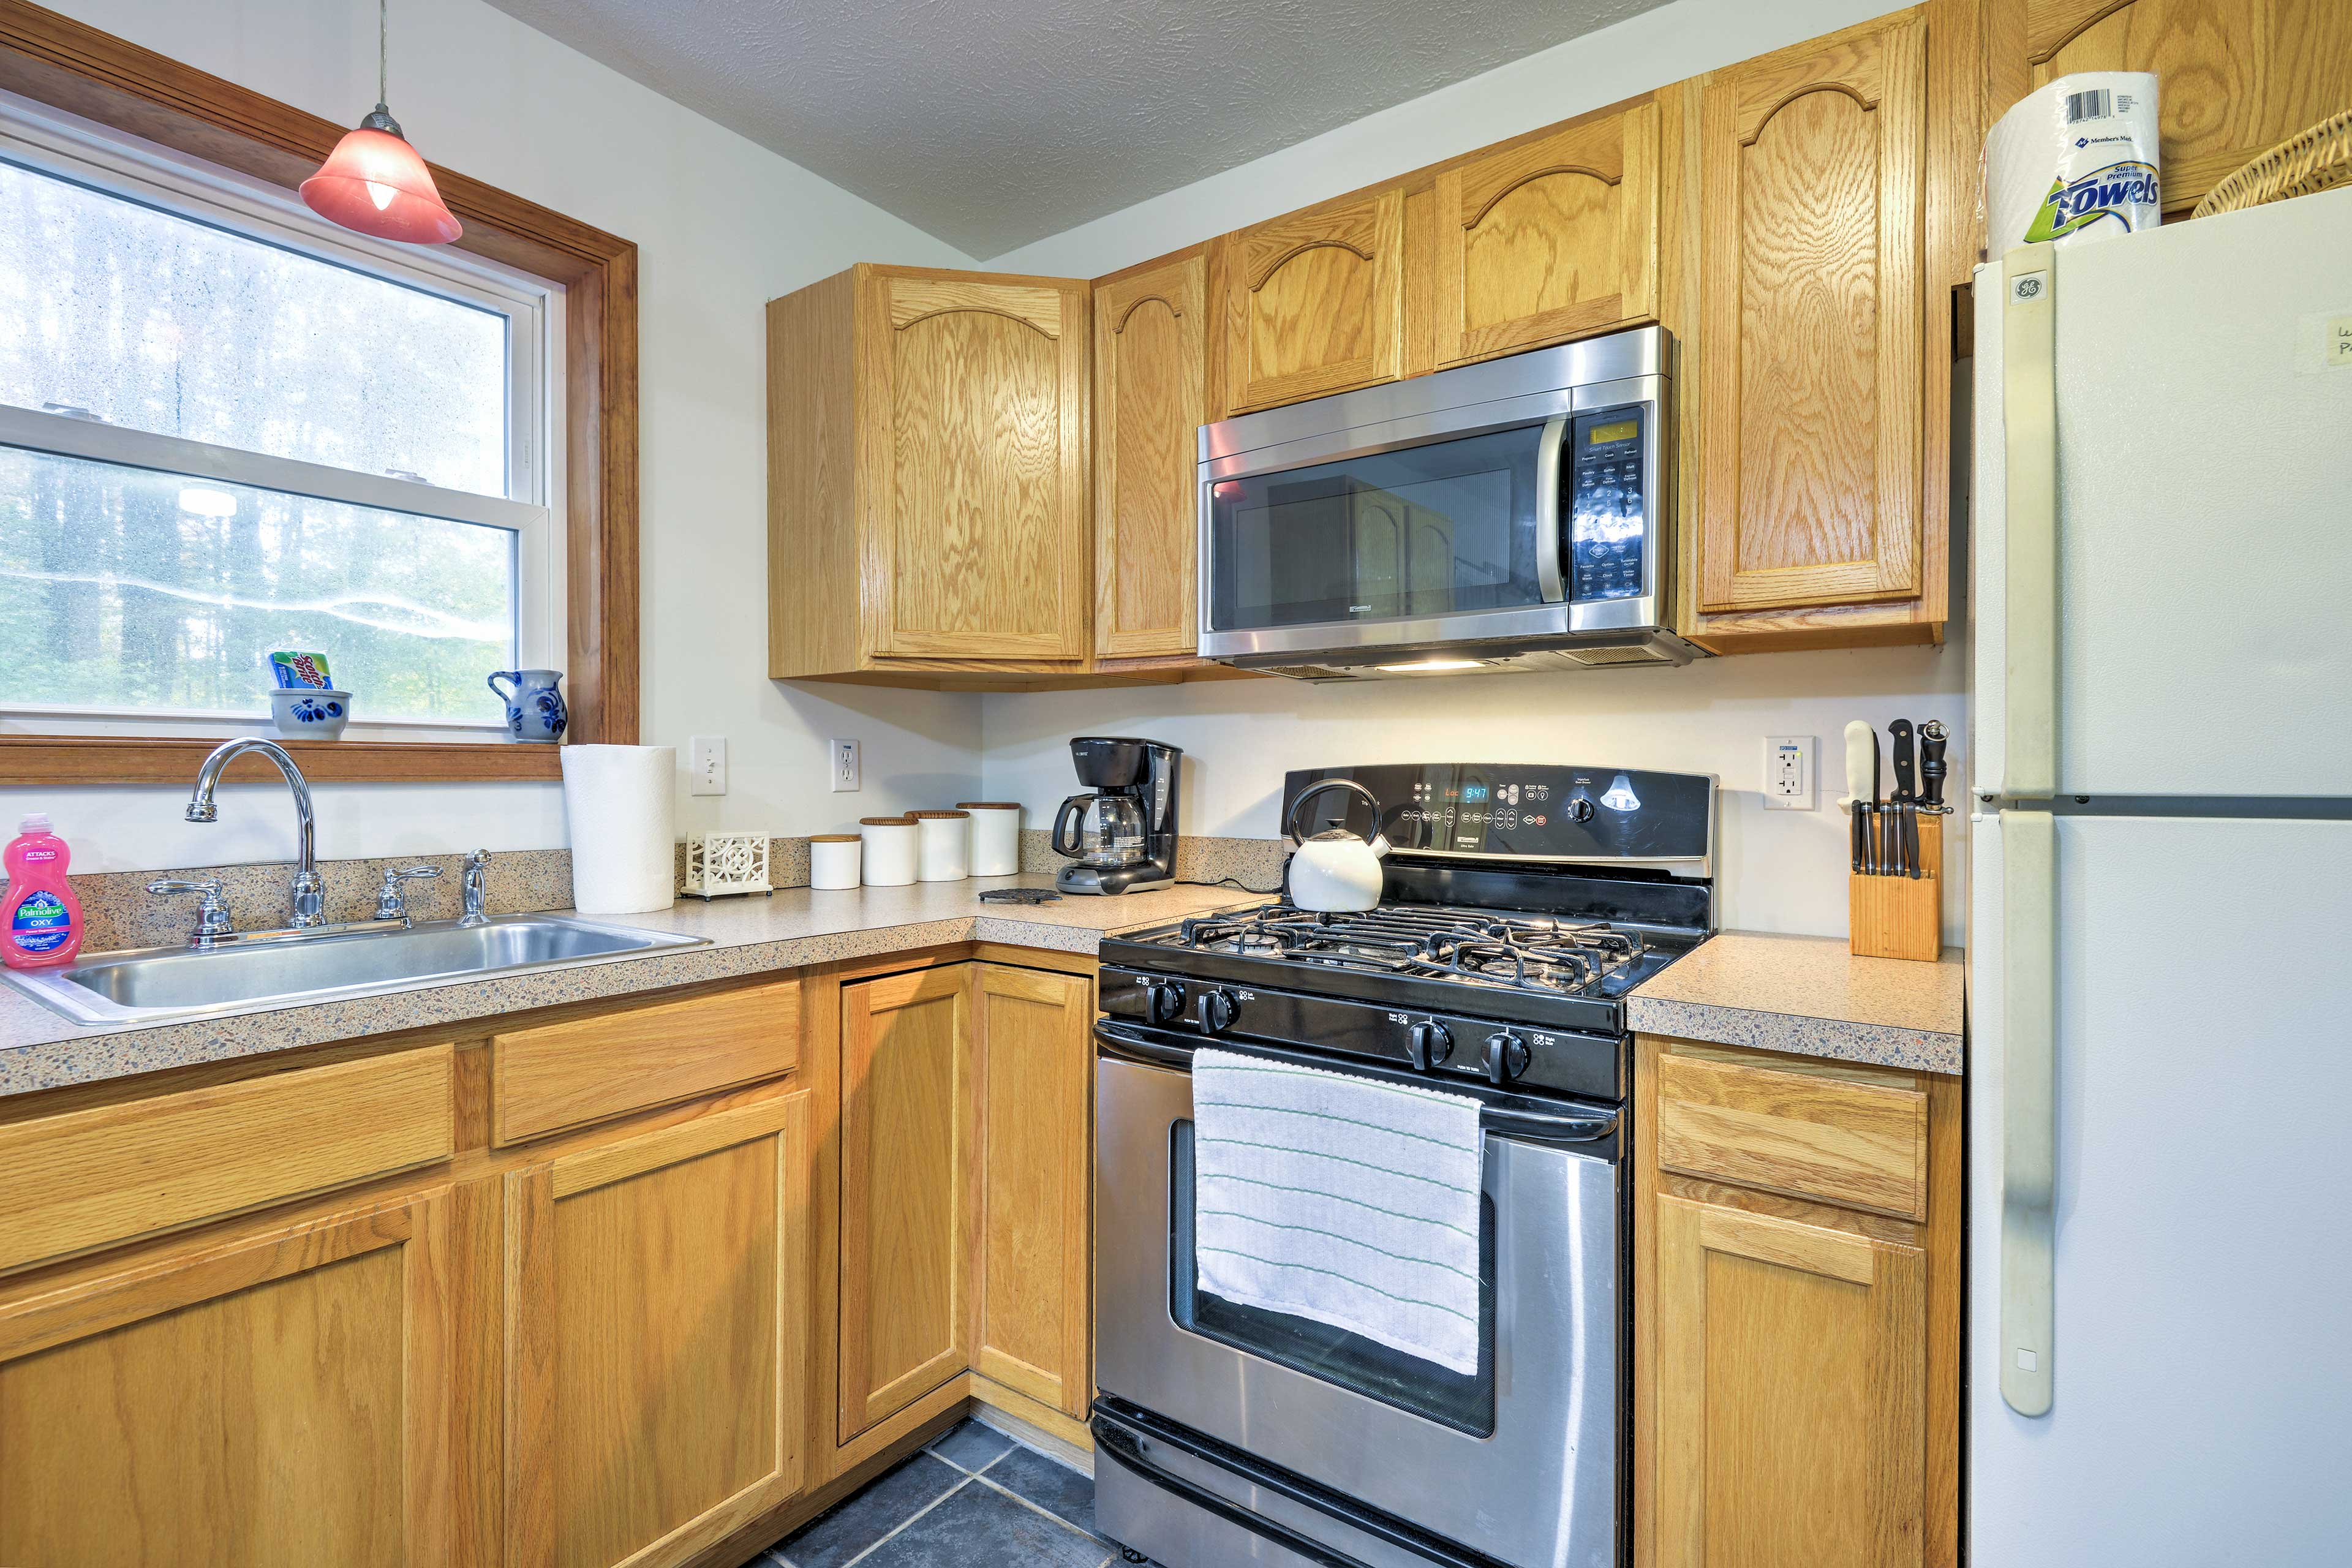 Prepare home-cooked meals with ease in the fully equipped kitchen.